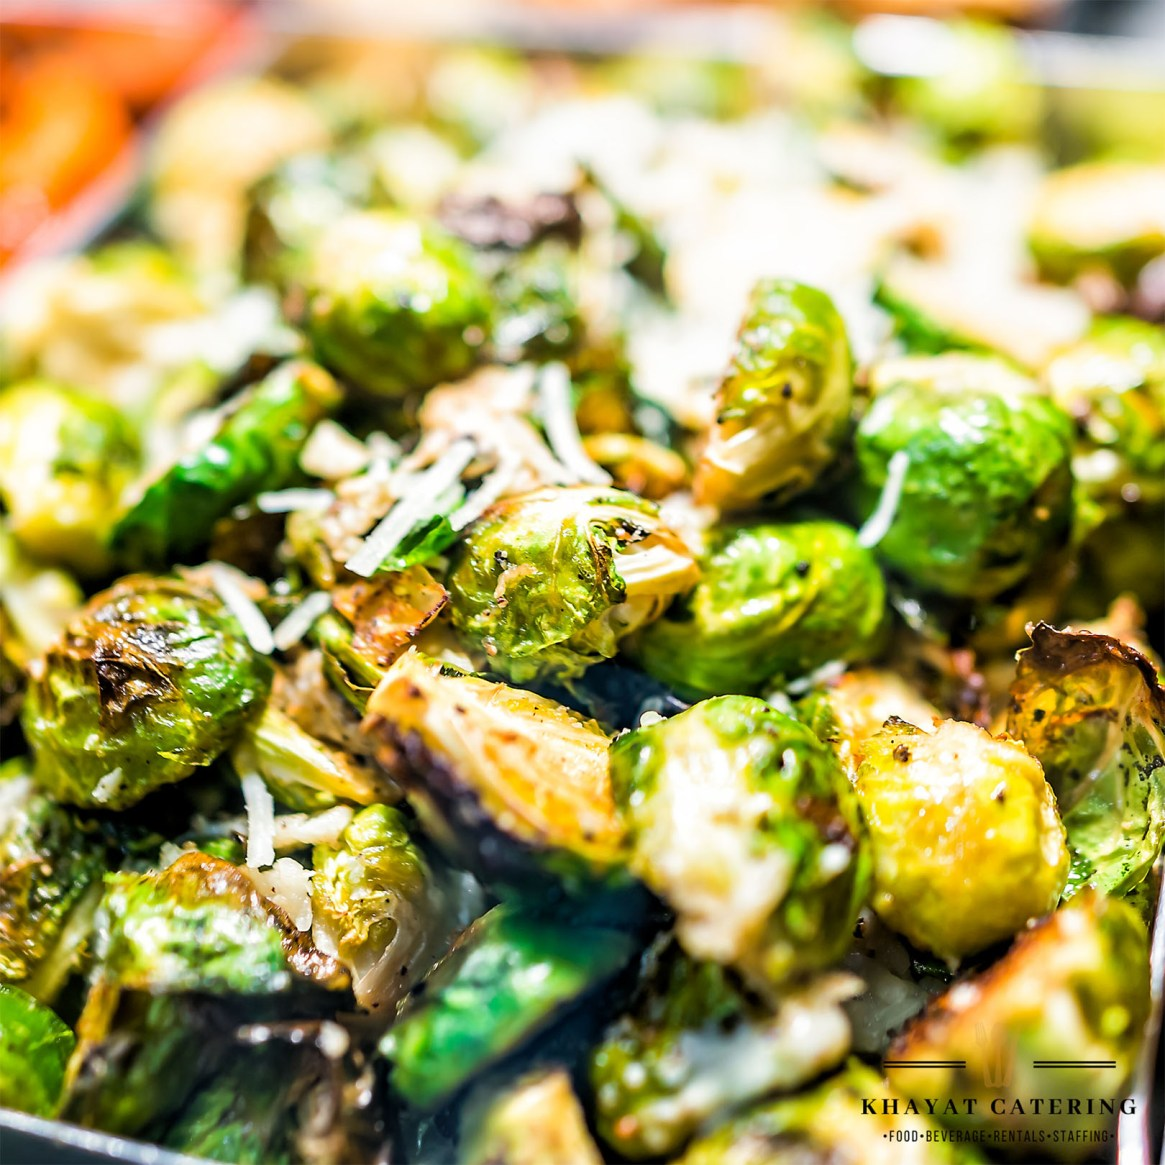 Khayat Catering Roasted Brussels sprouts